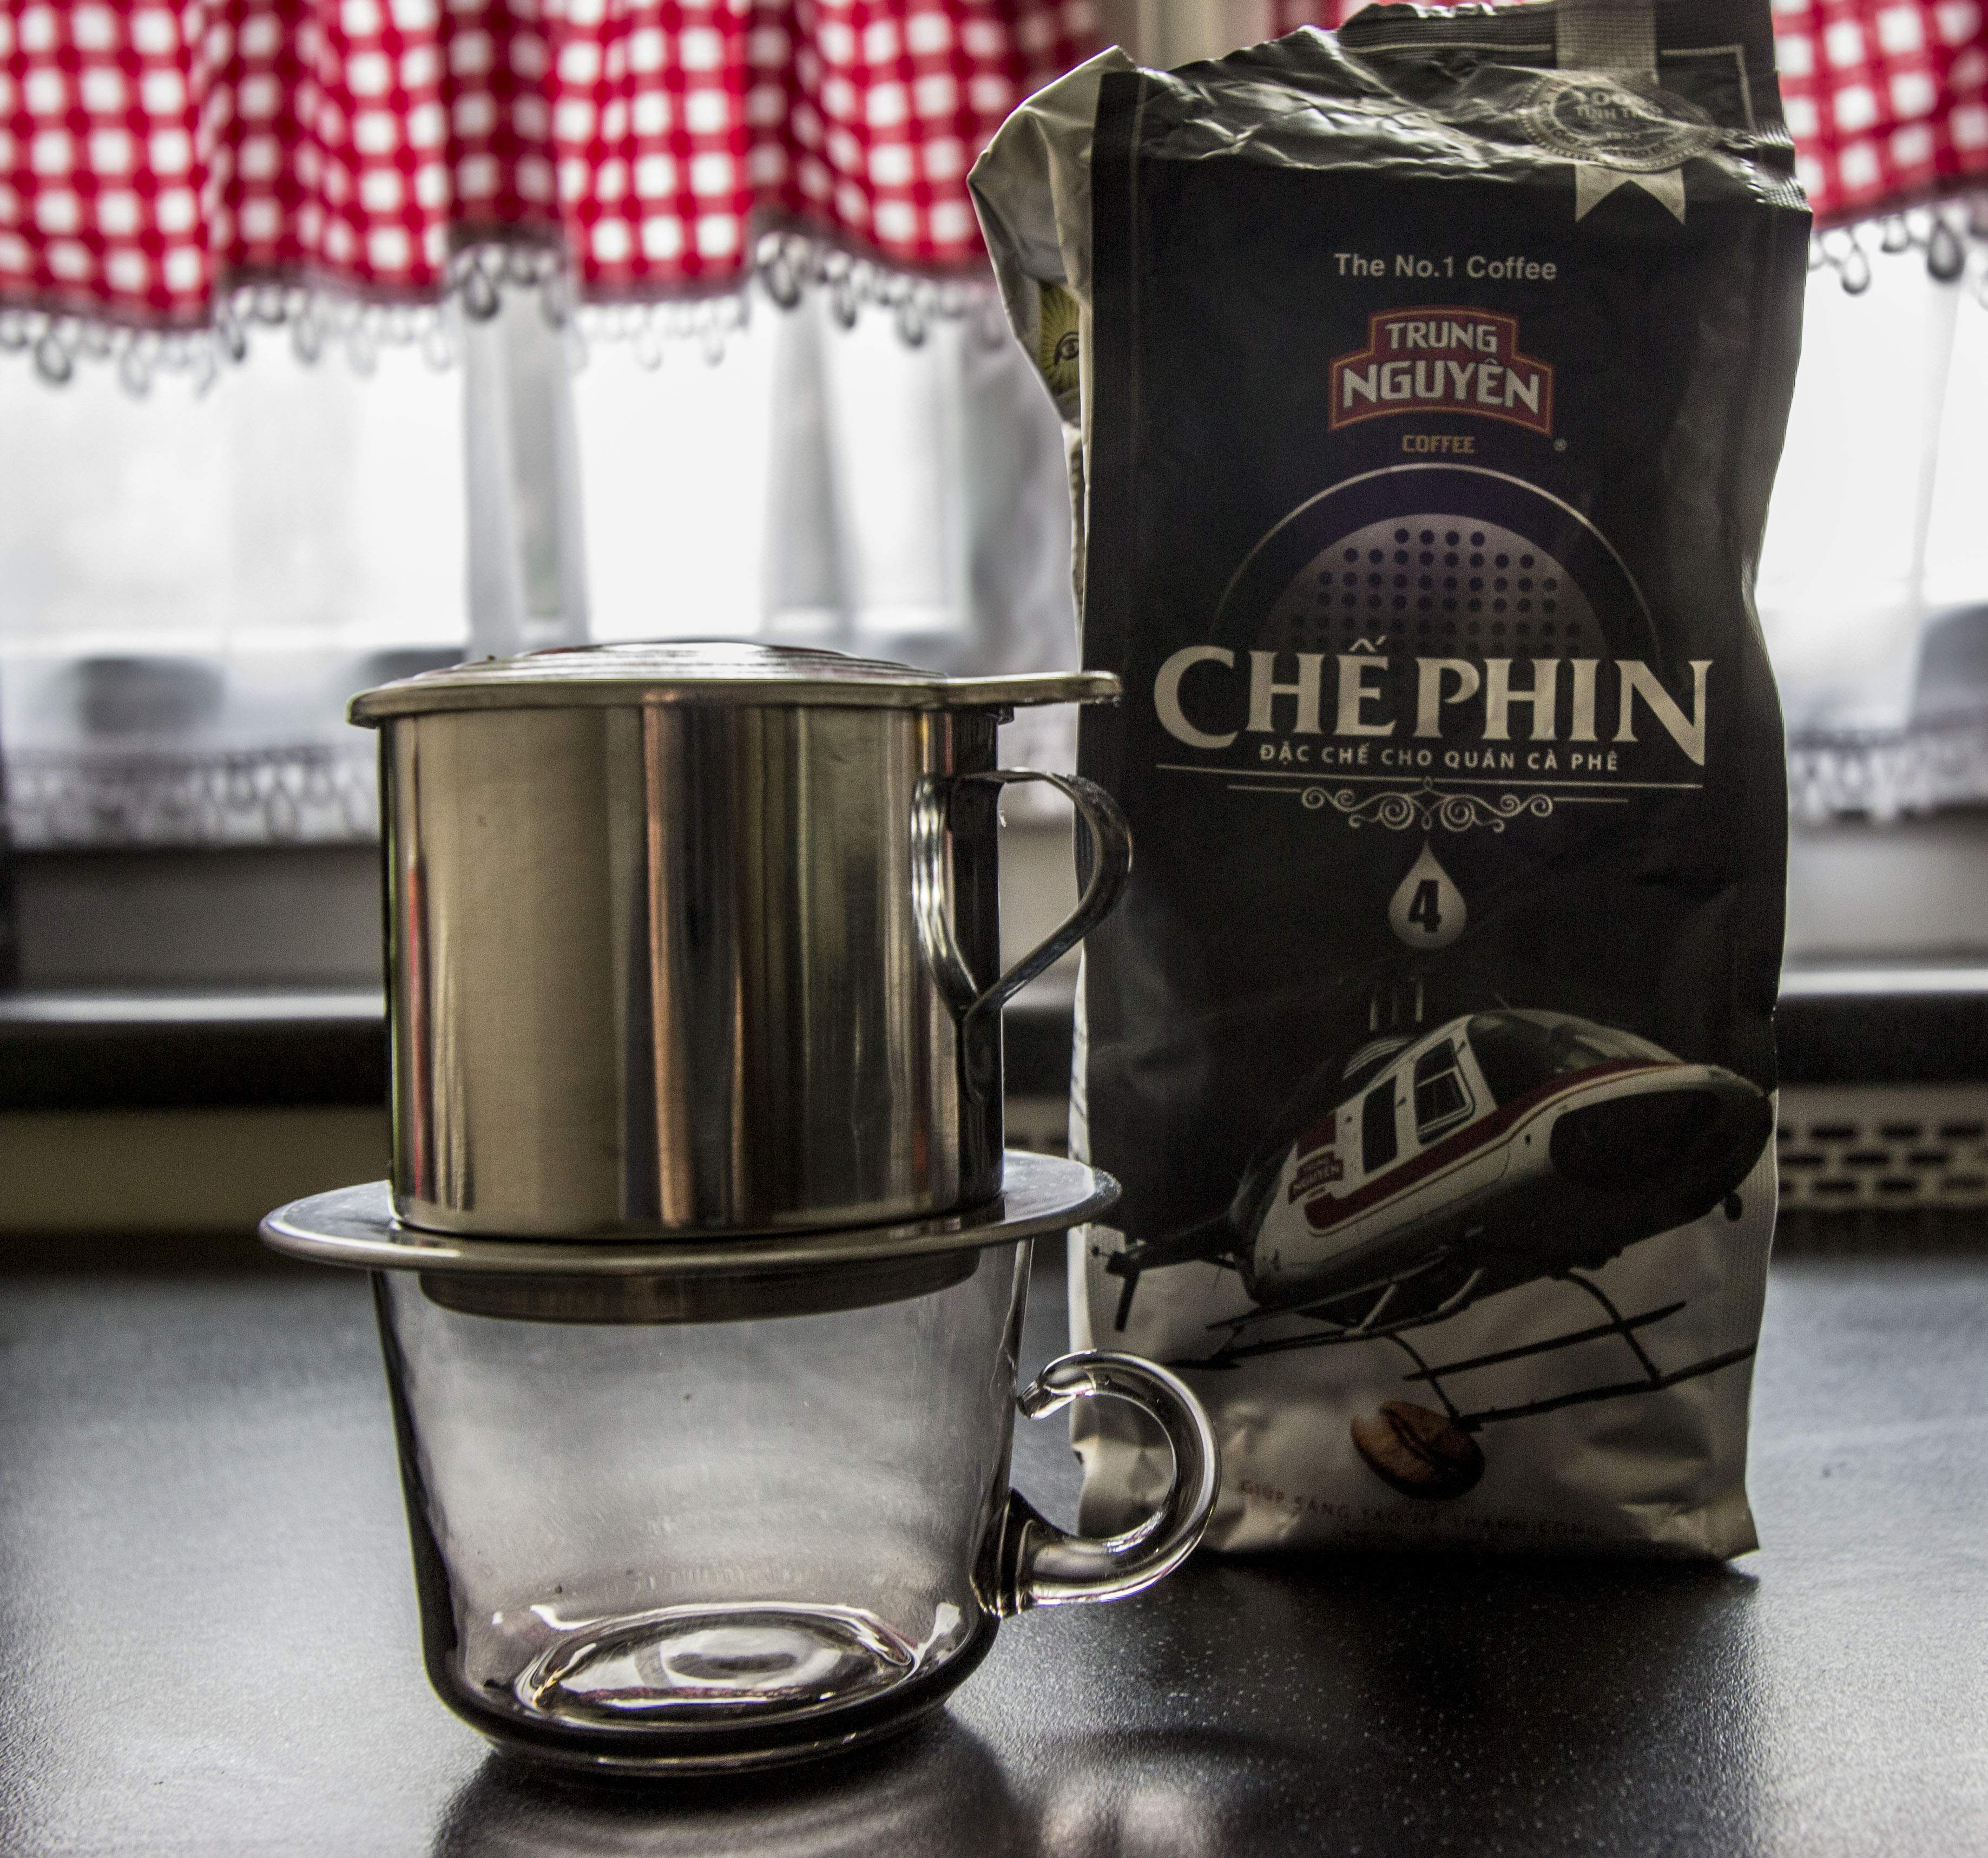 Recipe – How to prepare Vietnamese coffee?